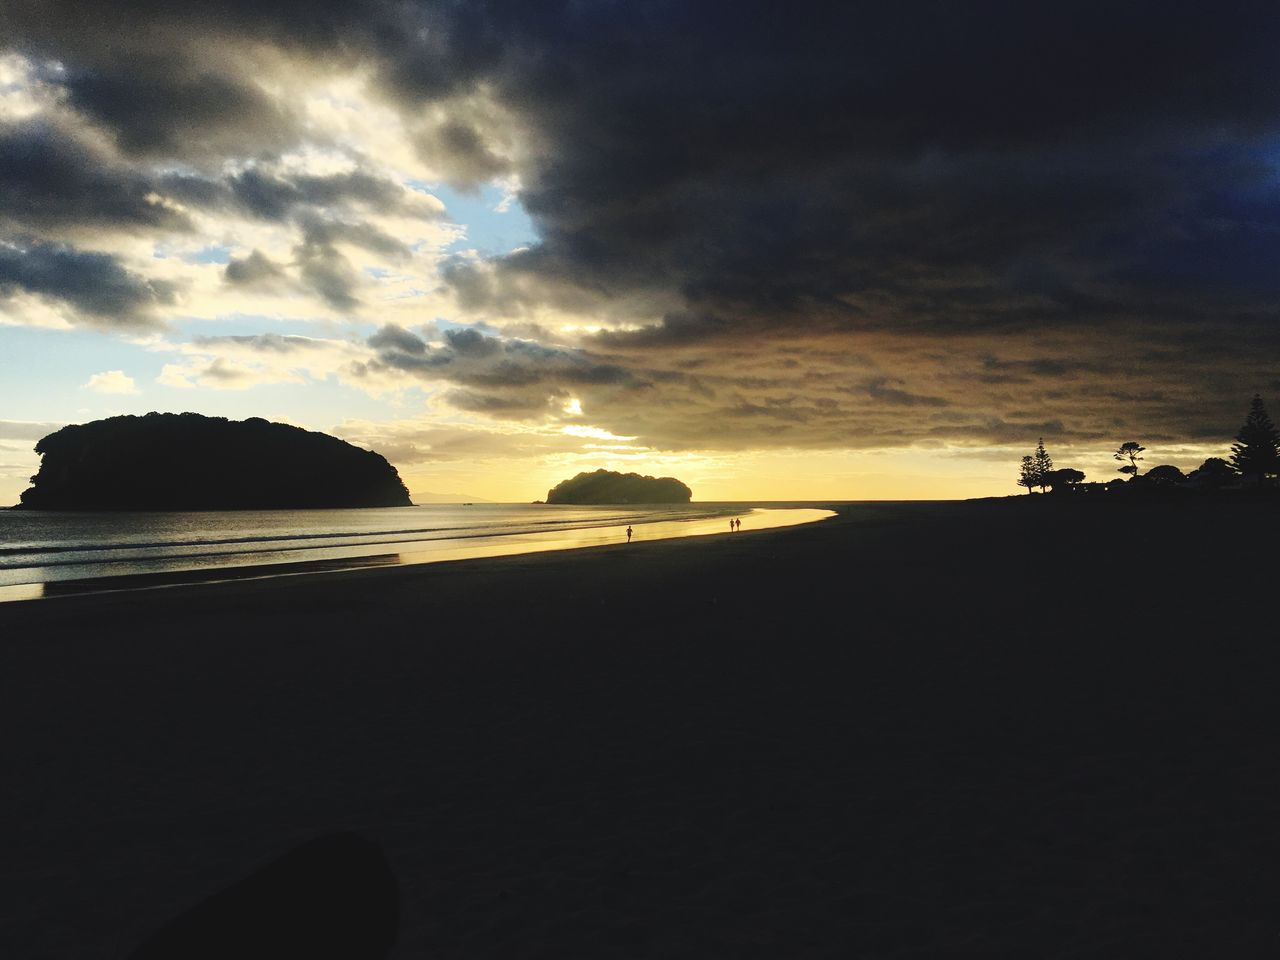 sunset, sky, nature, tranquility, scenics, beauty in nature, tranquil scene, silhouette, cloud - sky, sea, no people, outdoors, beach, water, day